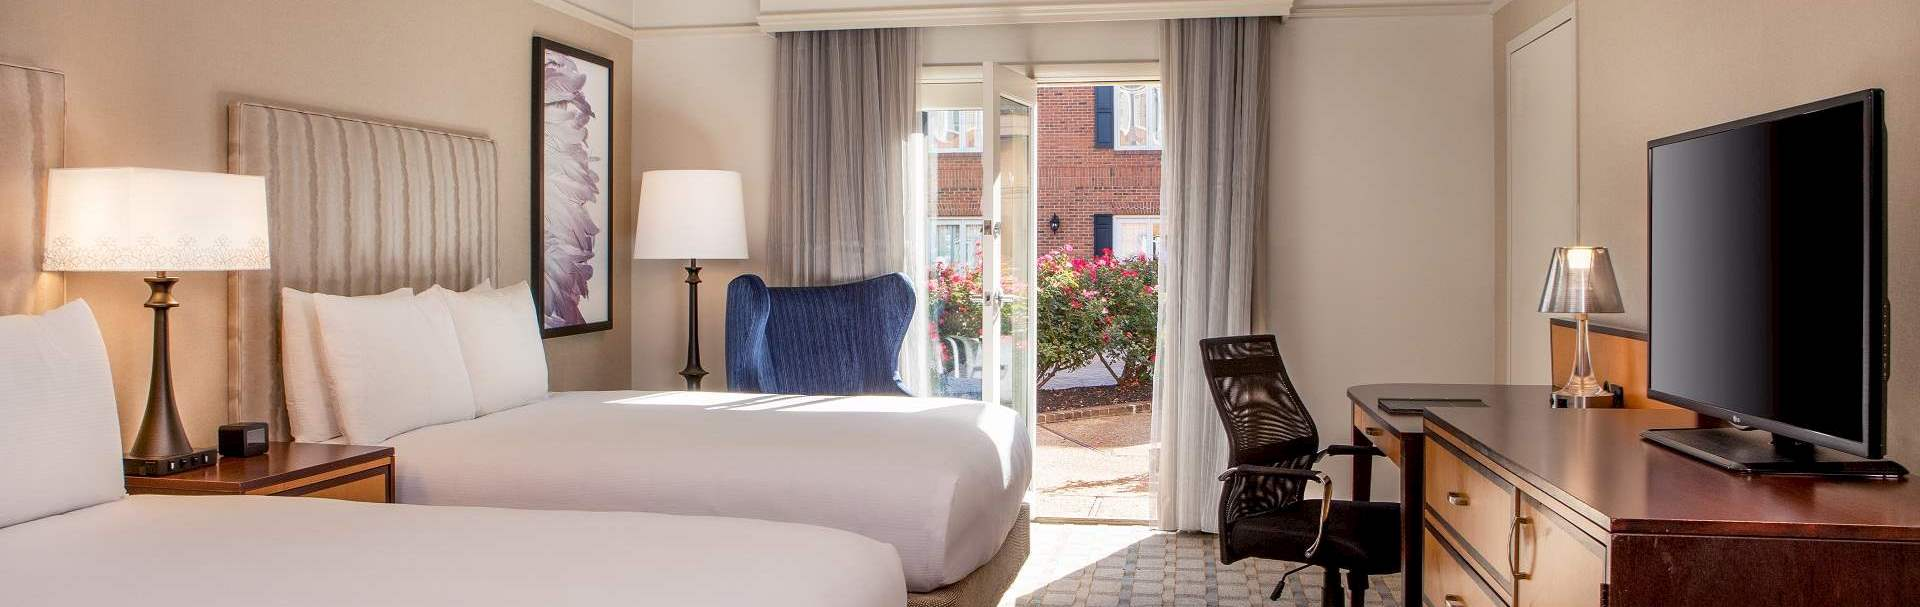 Hilton Wilmington/Christiana Newark, Delaware Specials